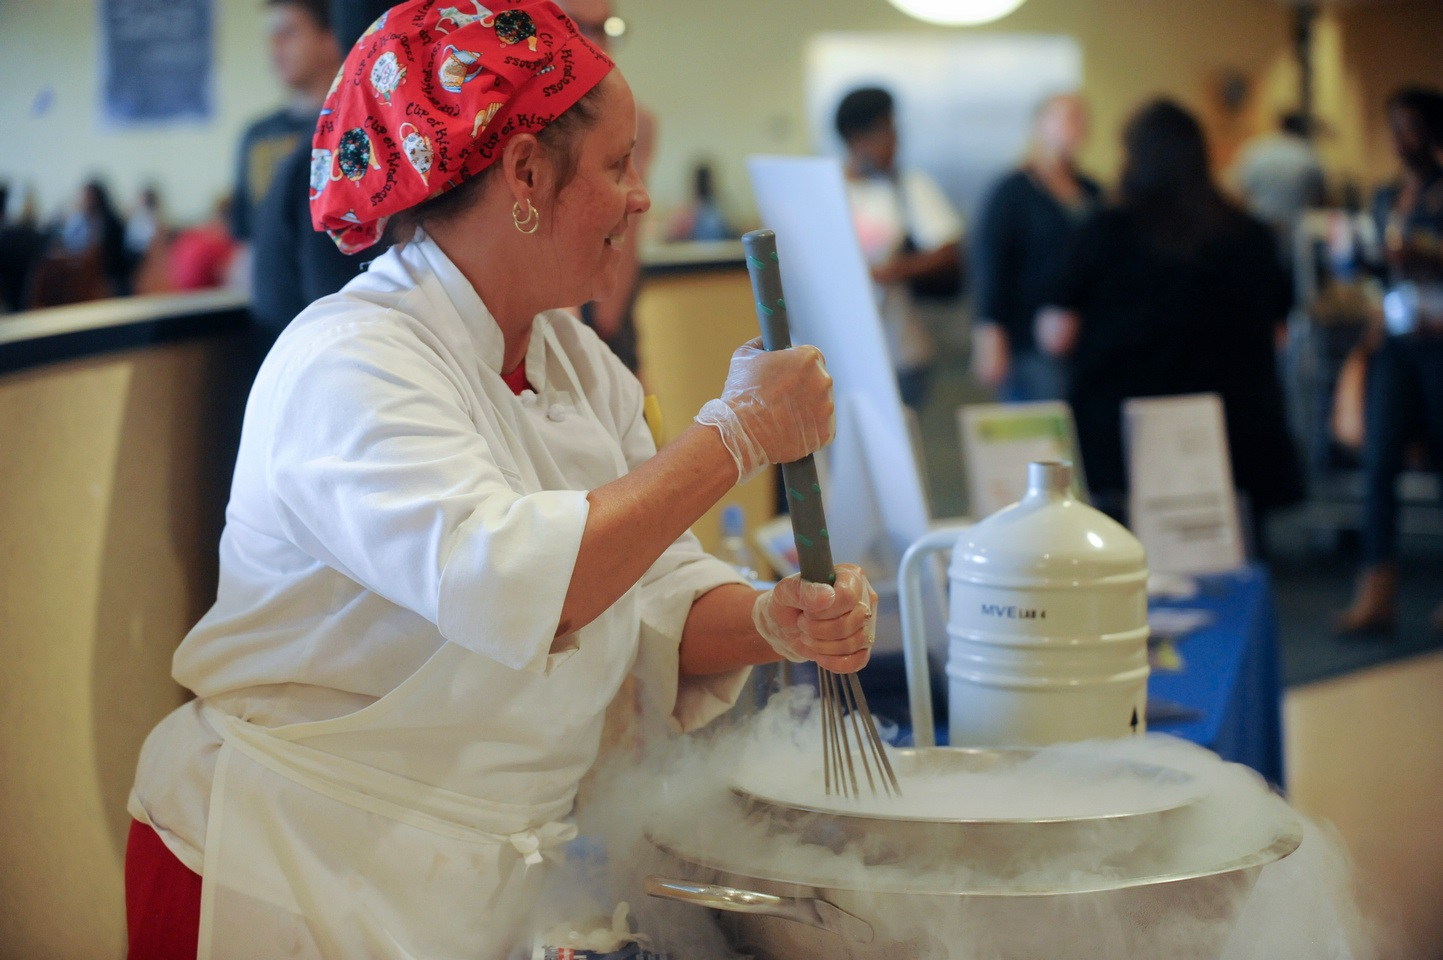 Photo 2 from Dining Services - making ice cream